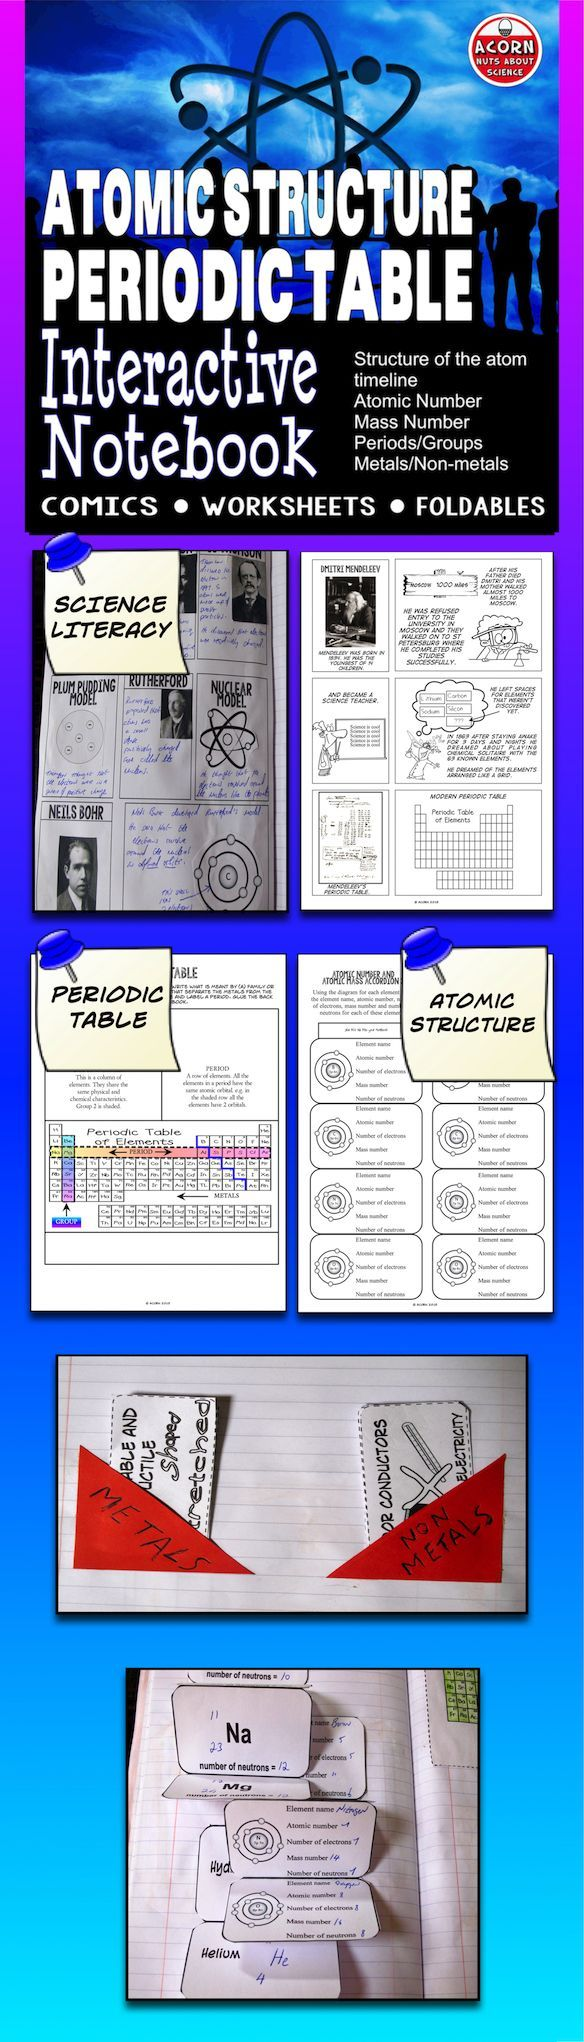 Science interactive notebook on the structure of the atom and the periodic table. Included in this resource are:  Discovery of the structure of the atom timeline - comic book style! Mendeleev and the Period Table Comic Book Style! Atomic Number and Mass Number (3 differentiated types of accordion foldable) The Periodic Table Periods/Groups Metals/Non-Metals Metalloids Worksheet